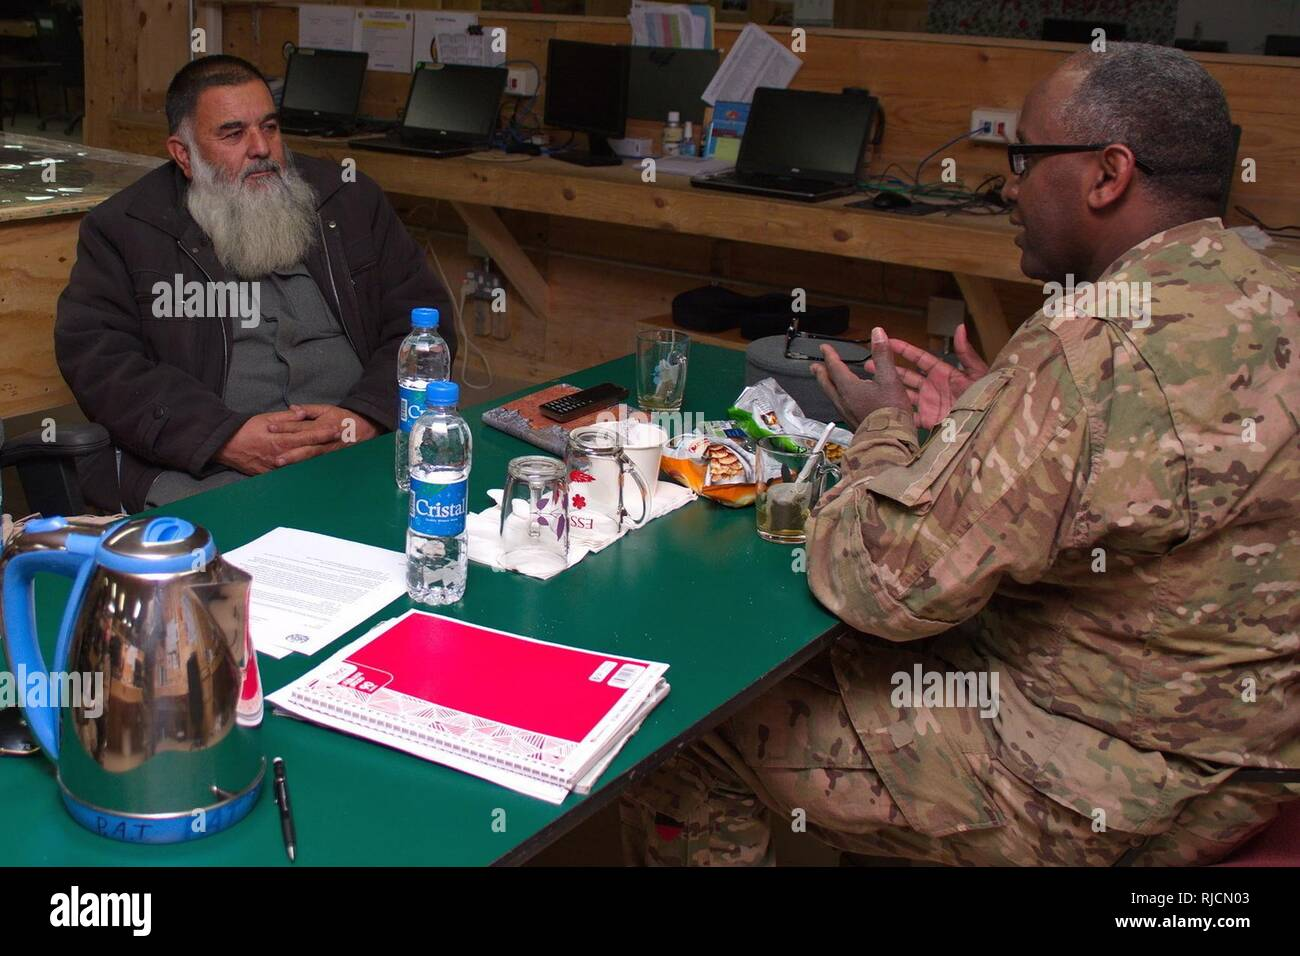 Afghan National Police (ANP) 303rd Zone G1 Commander Col. Zikarullah meets with Task Force Southeast Police Advisor Team (PAT) G1 Advisor Maj. Nuir Hussein of the 3rd Infantry Division Main Command Post Operational Detachment during a key-leader-engagement at Advisory Platform Lightning to discuss training of Afghan personnel on the Afghan Personnel and Pay System (APPS).  APPS is an automated system that generates payroll information for the Ministry of Finance while integrating authorizations, personnel record management and payroll functions into one system for Afghan National Defense and S - Stock Image